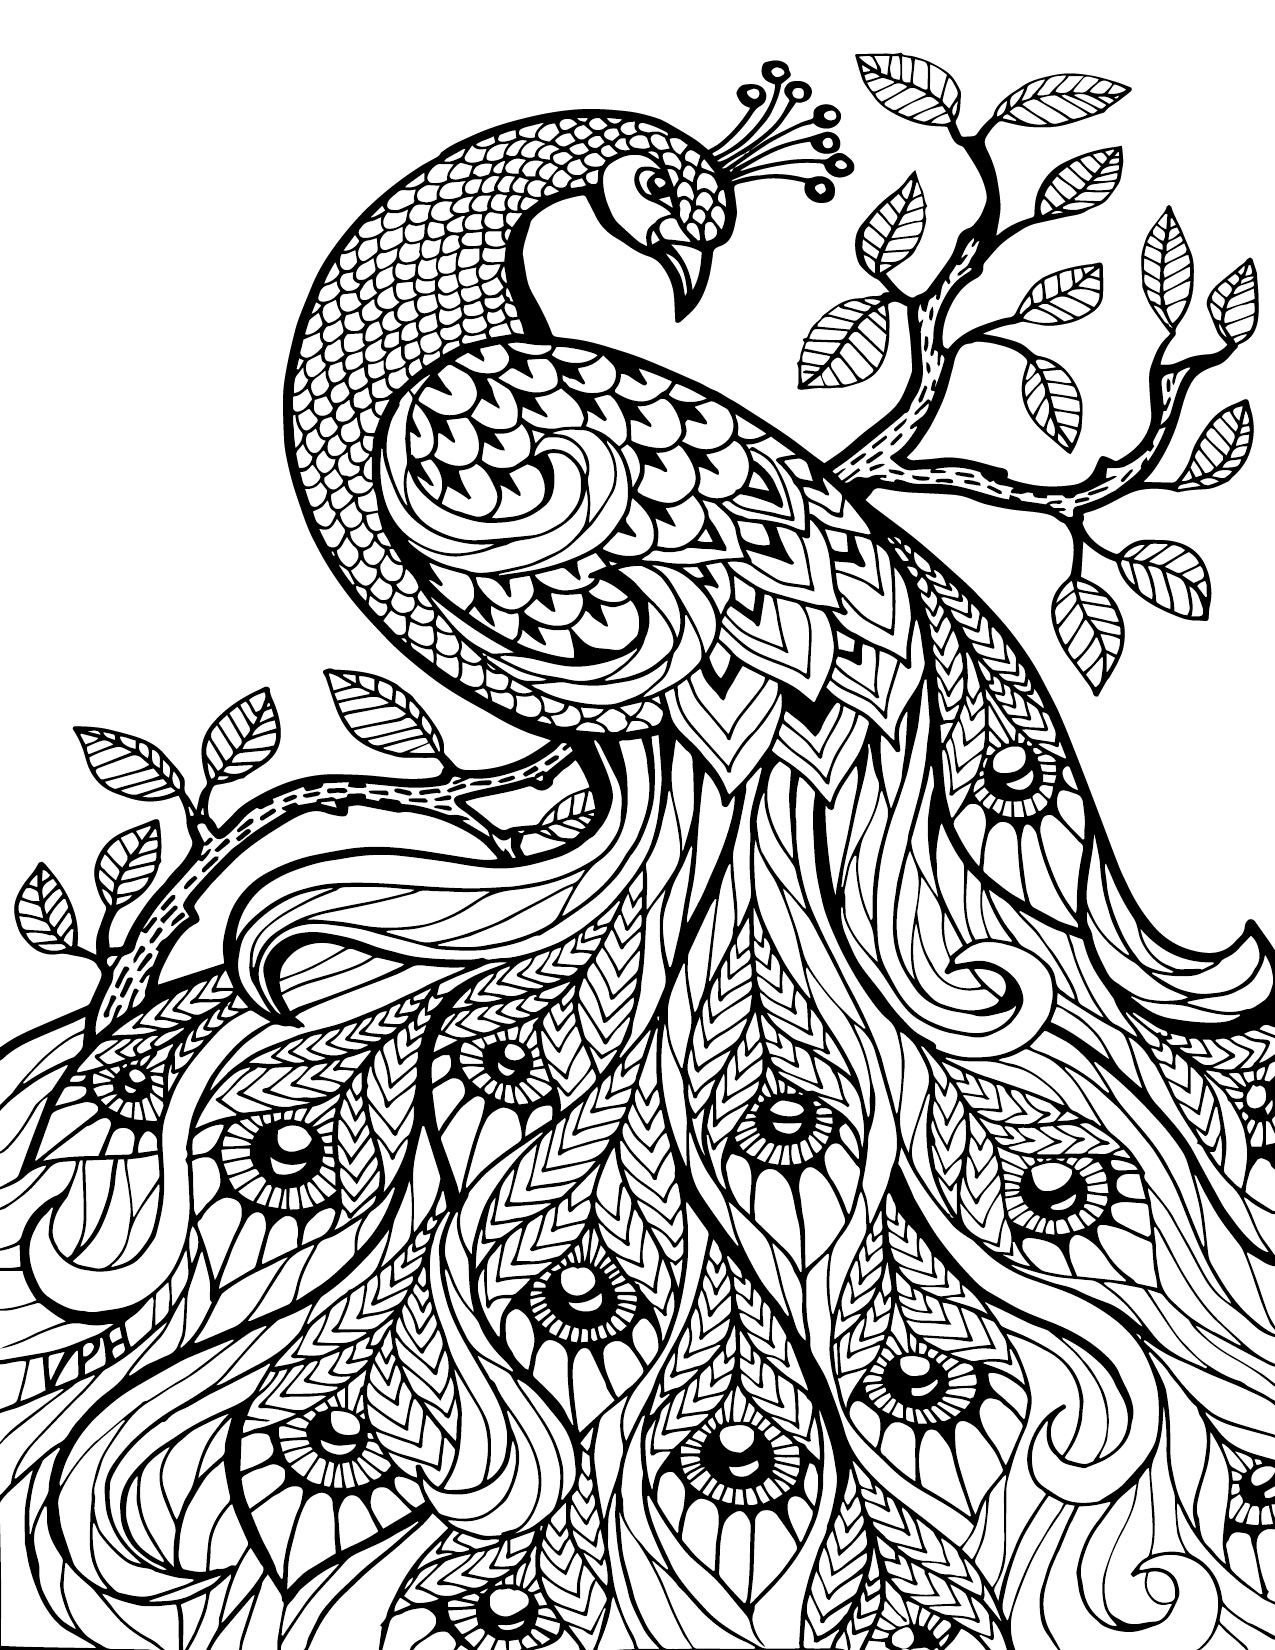 adult coloring pages - Download Coloring Pages For Adults